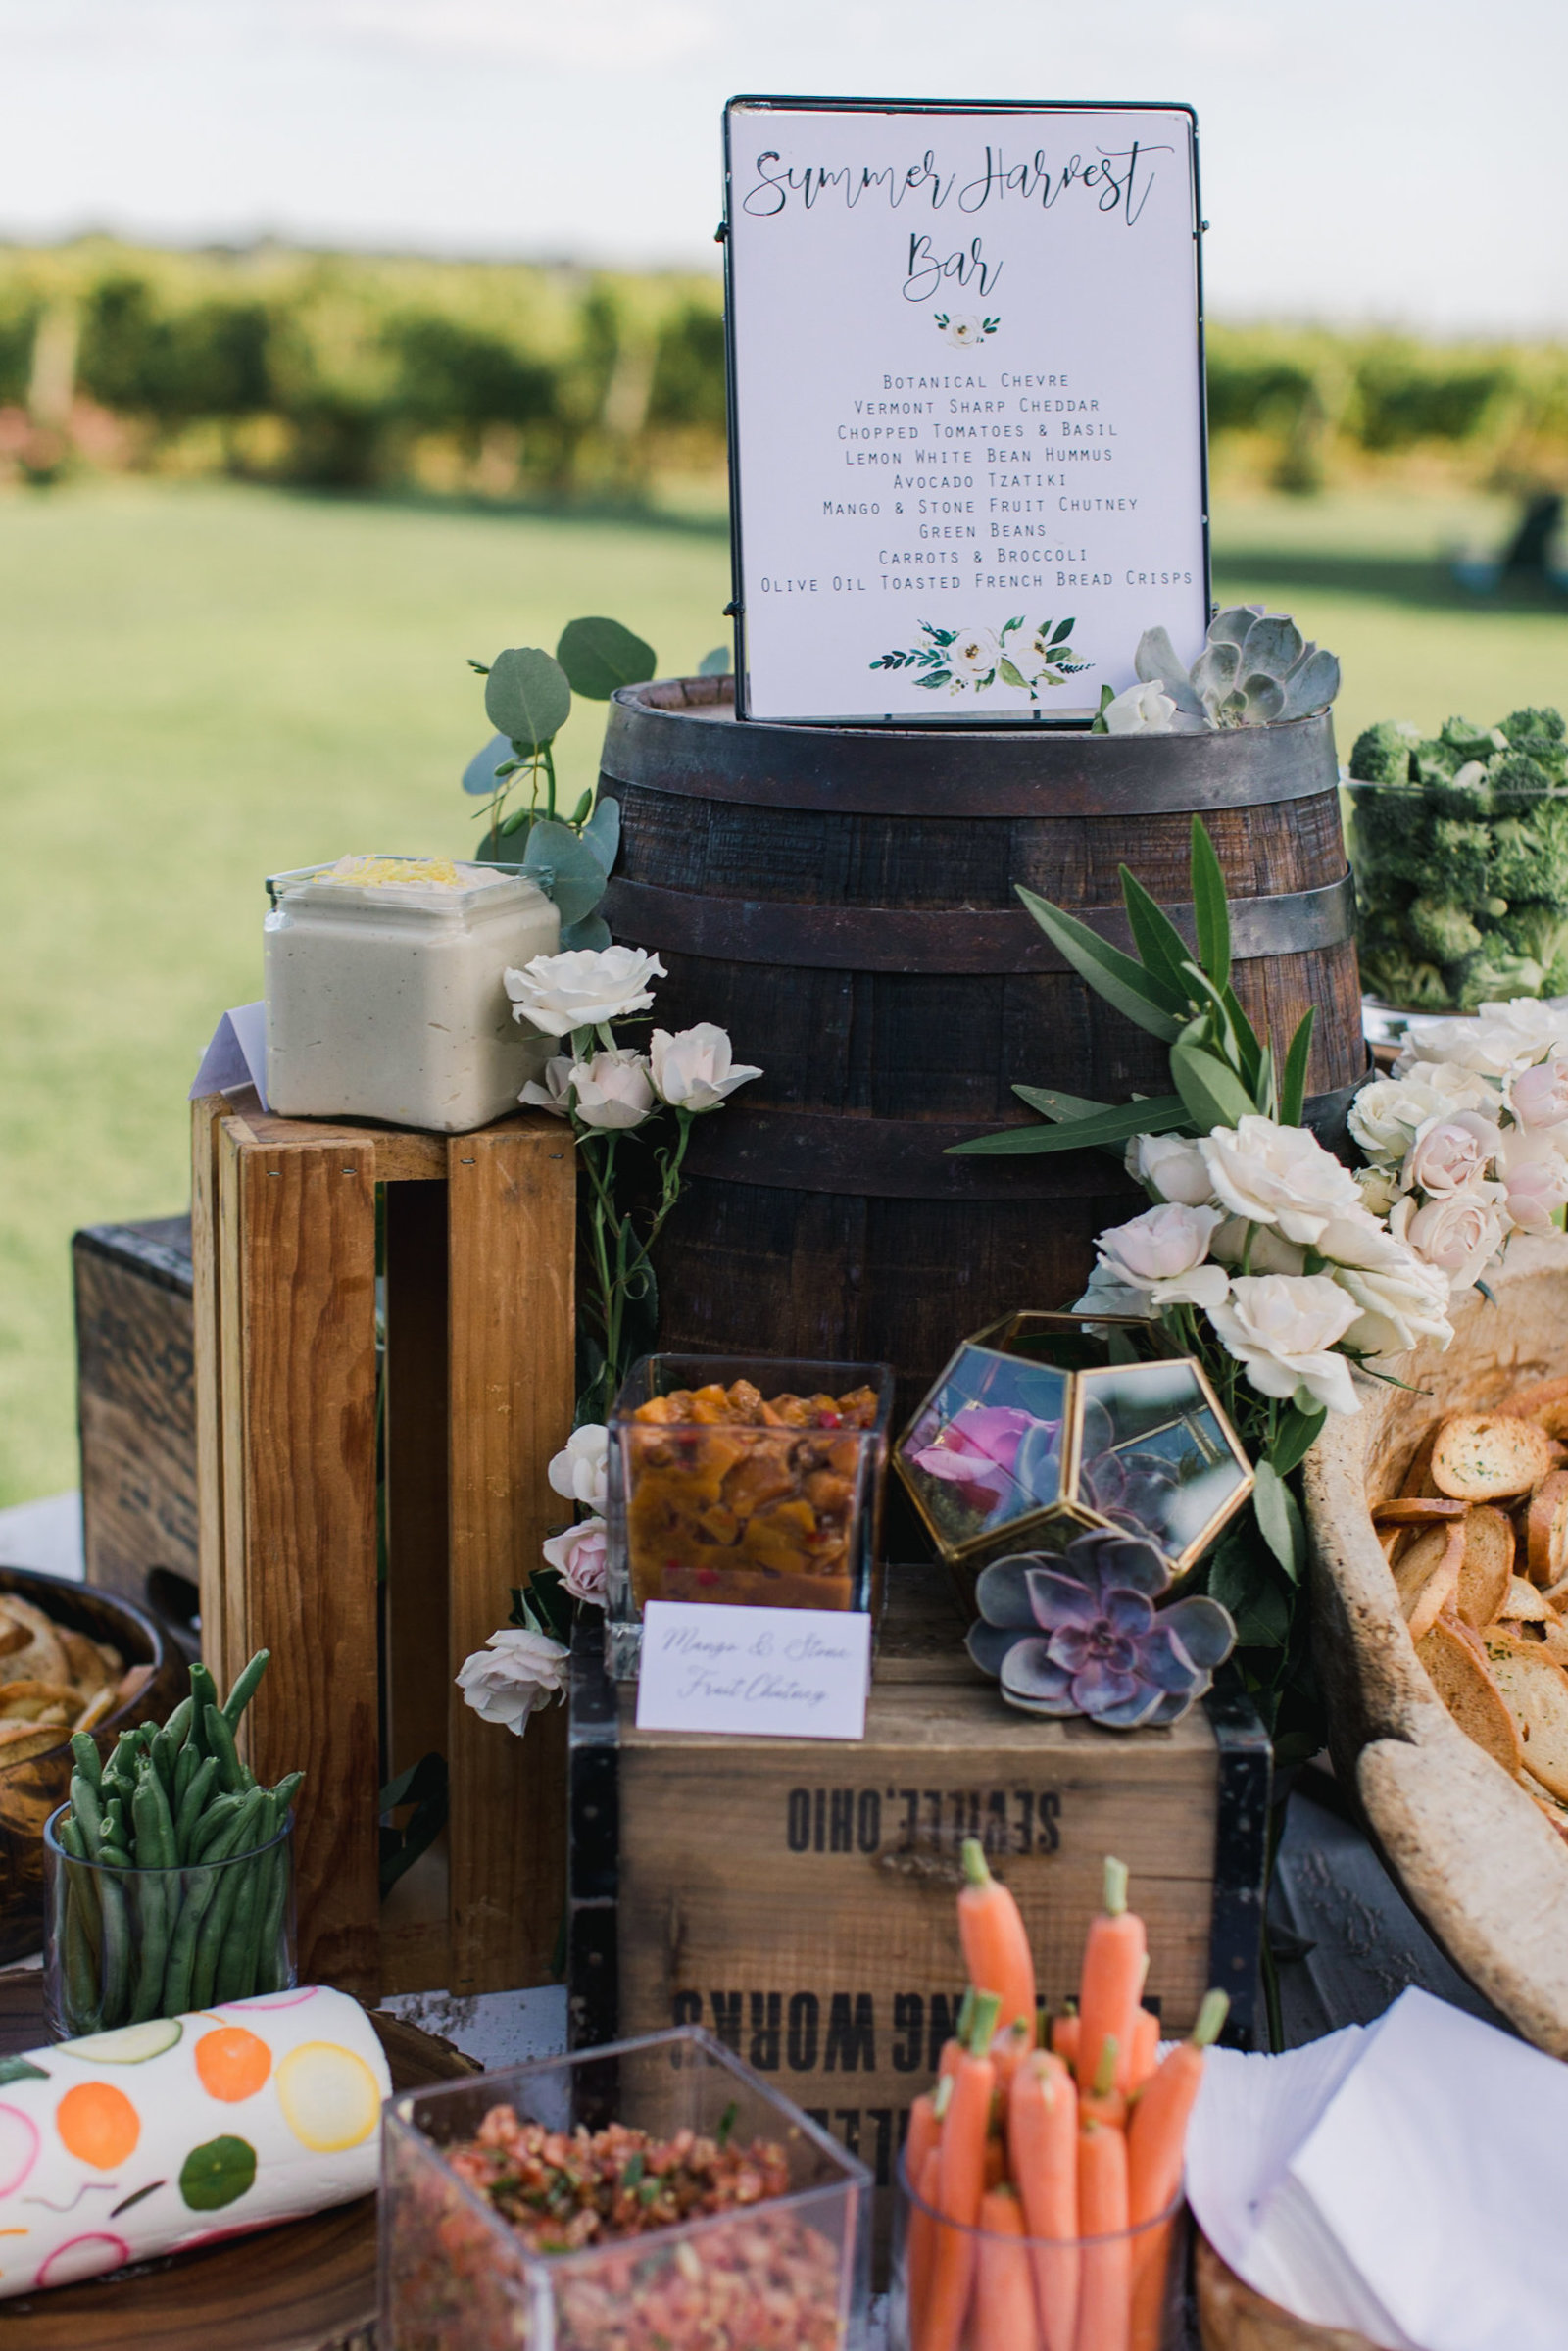 Saltwater Farm Vineyard Wedding_A Thyme to Cook